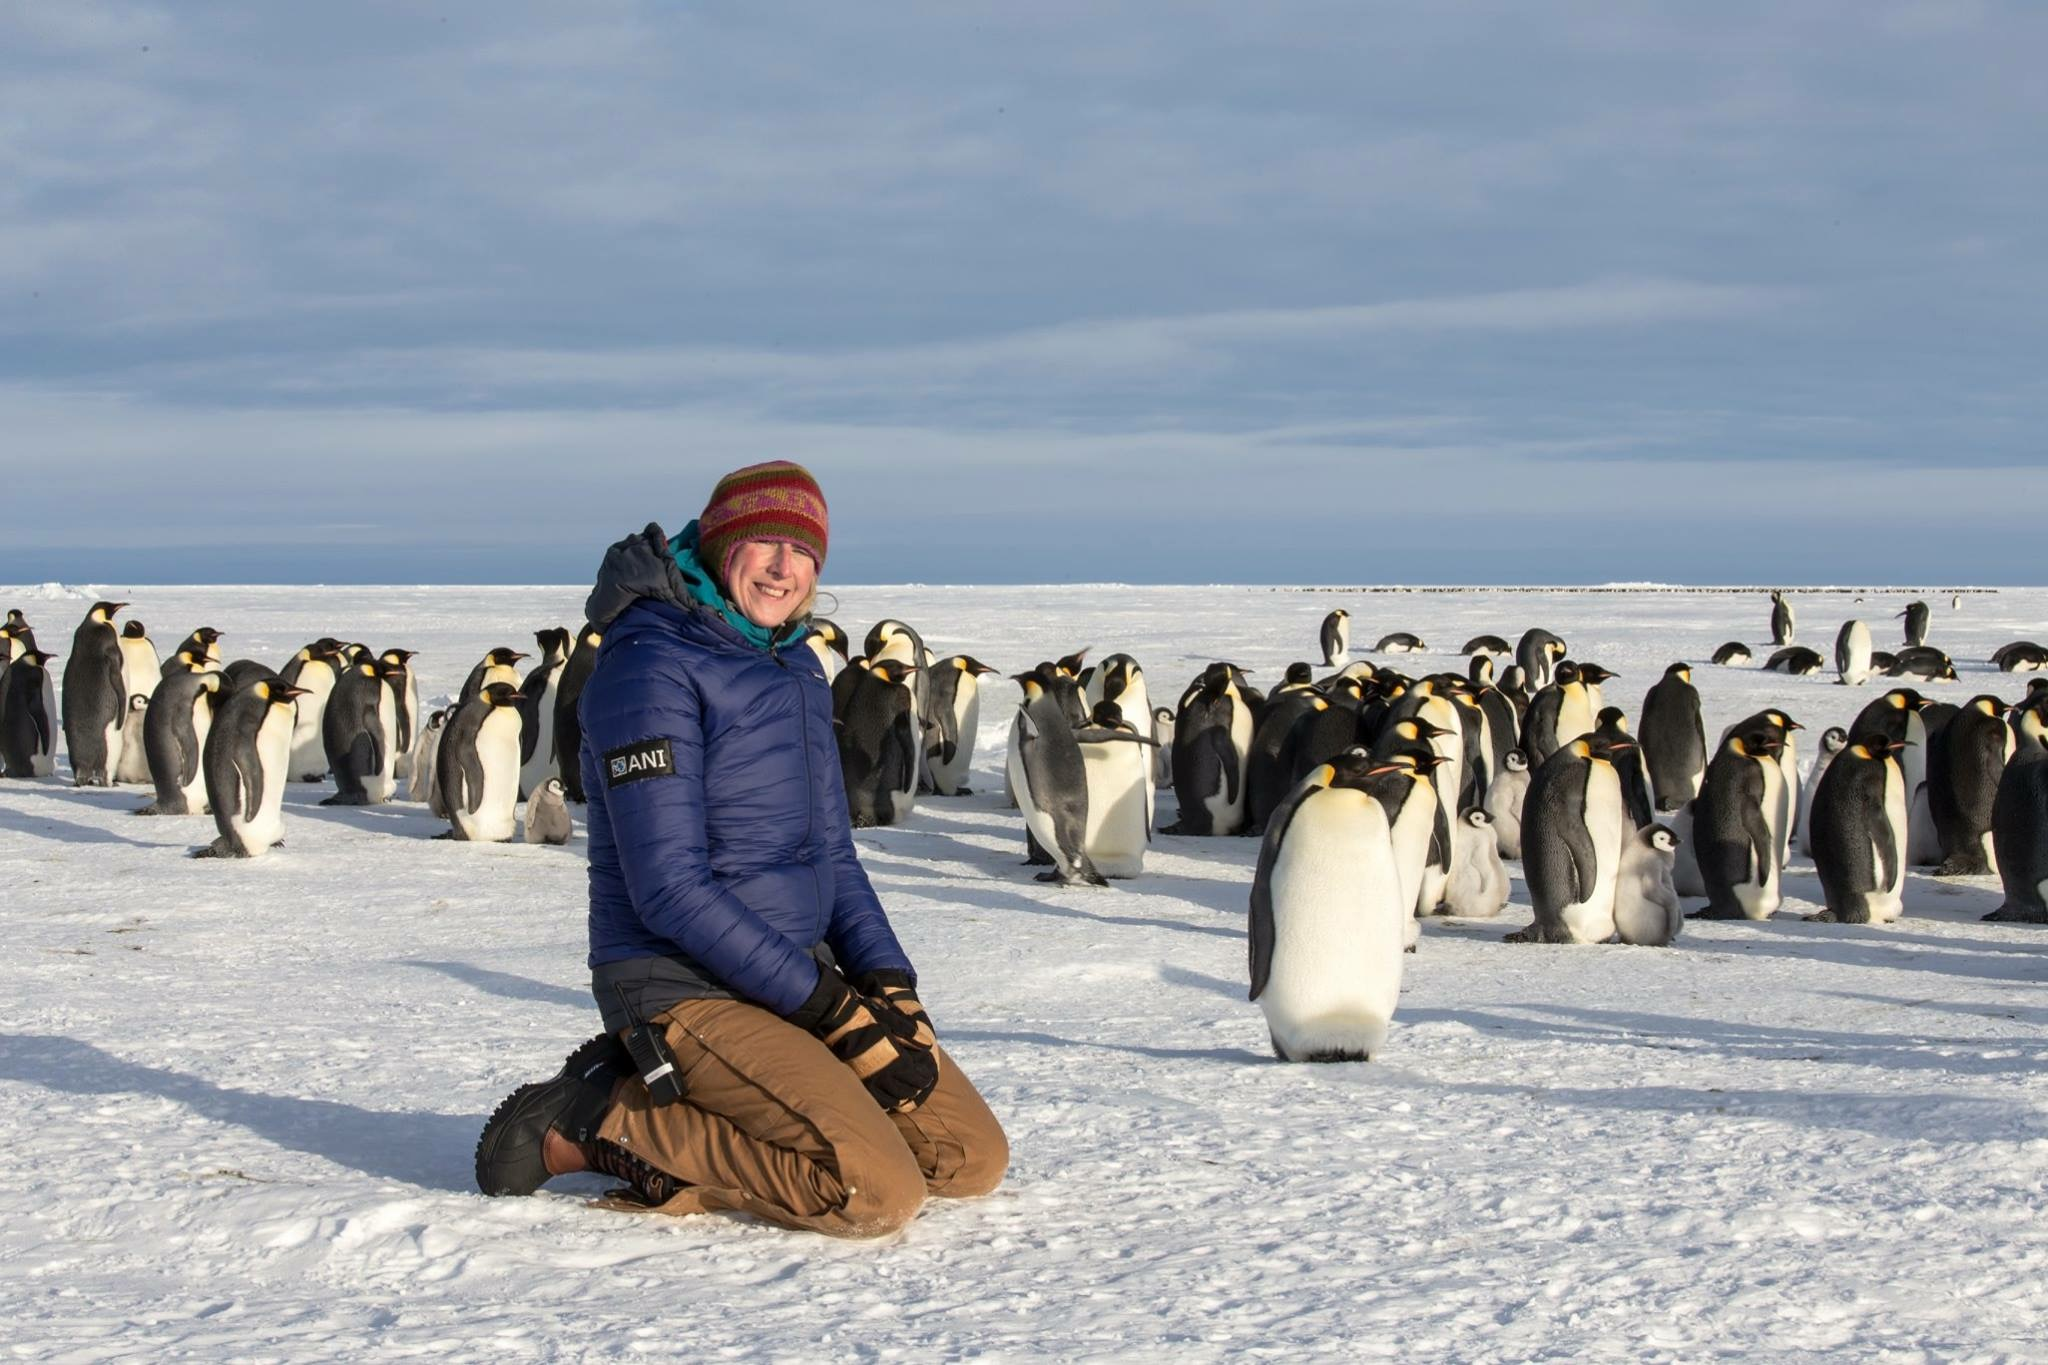 Hannah in her role as Camp Manager at the Antarctic Logistics and Expeditions Emperor Penguin Camp at Gould Bay, Antarctica